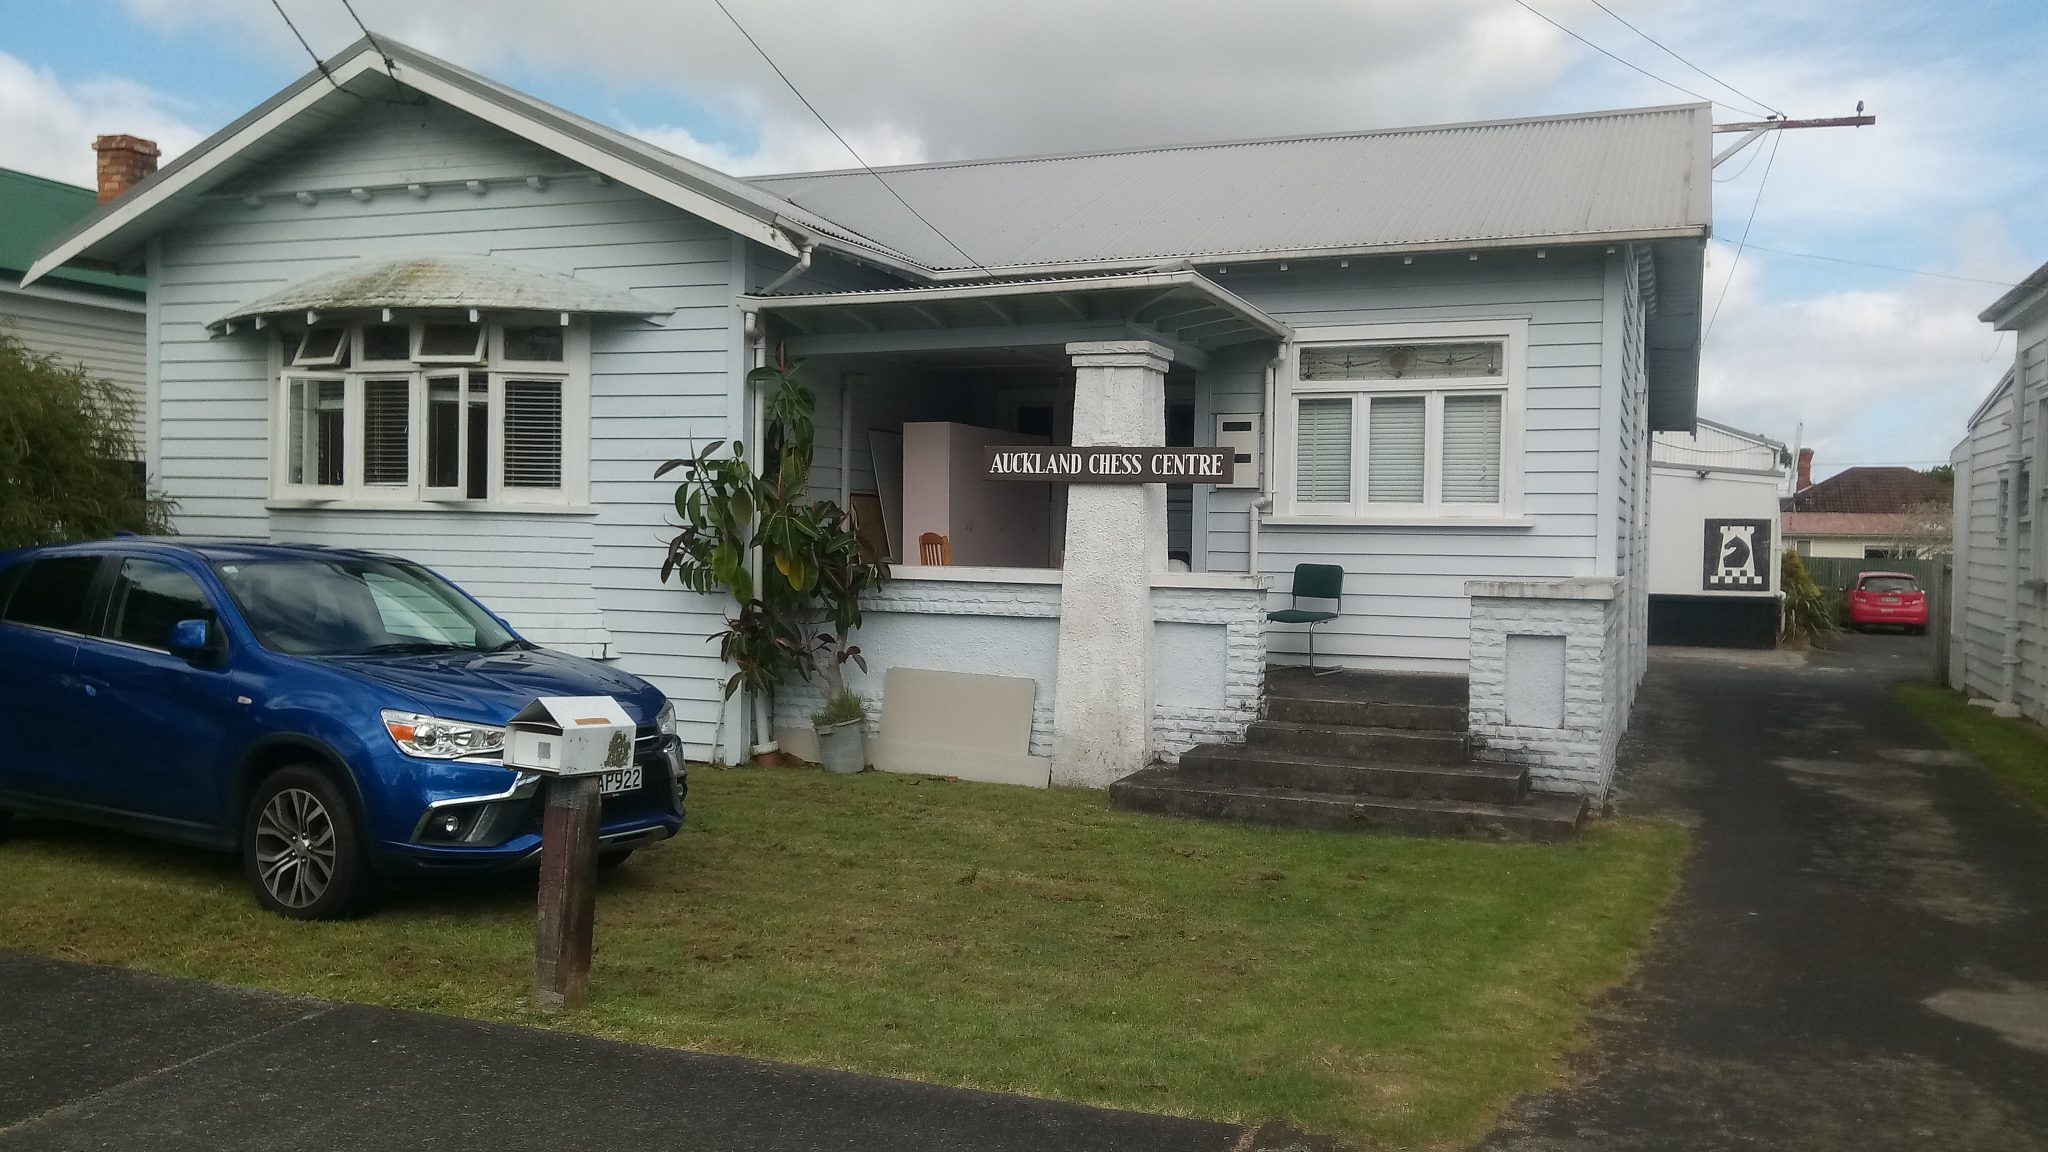 Auckland Chess Centre – Chess in Auckland since 1871